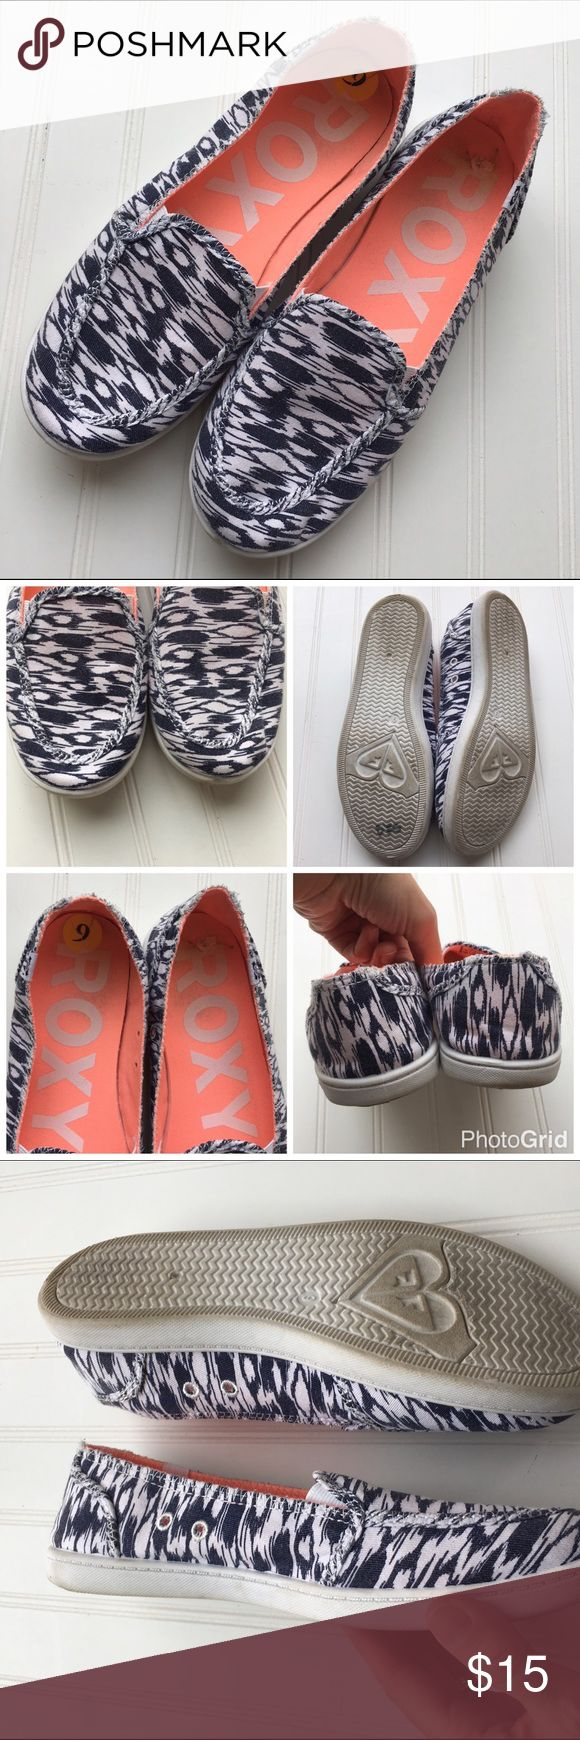 """Roxy blue & white slip on canvas shoes! 9 Great navy blue and white canvas shoes! Great condition, super comfy for spring! Bottom measures just under 11"""". Roxy // size 9 // Roxy Shoes"""